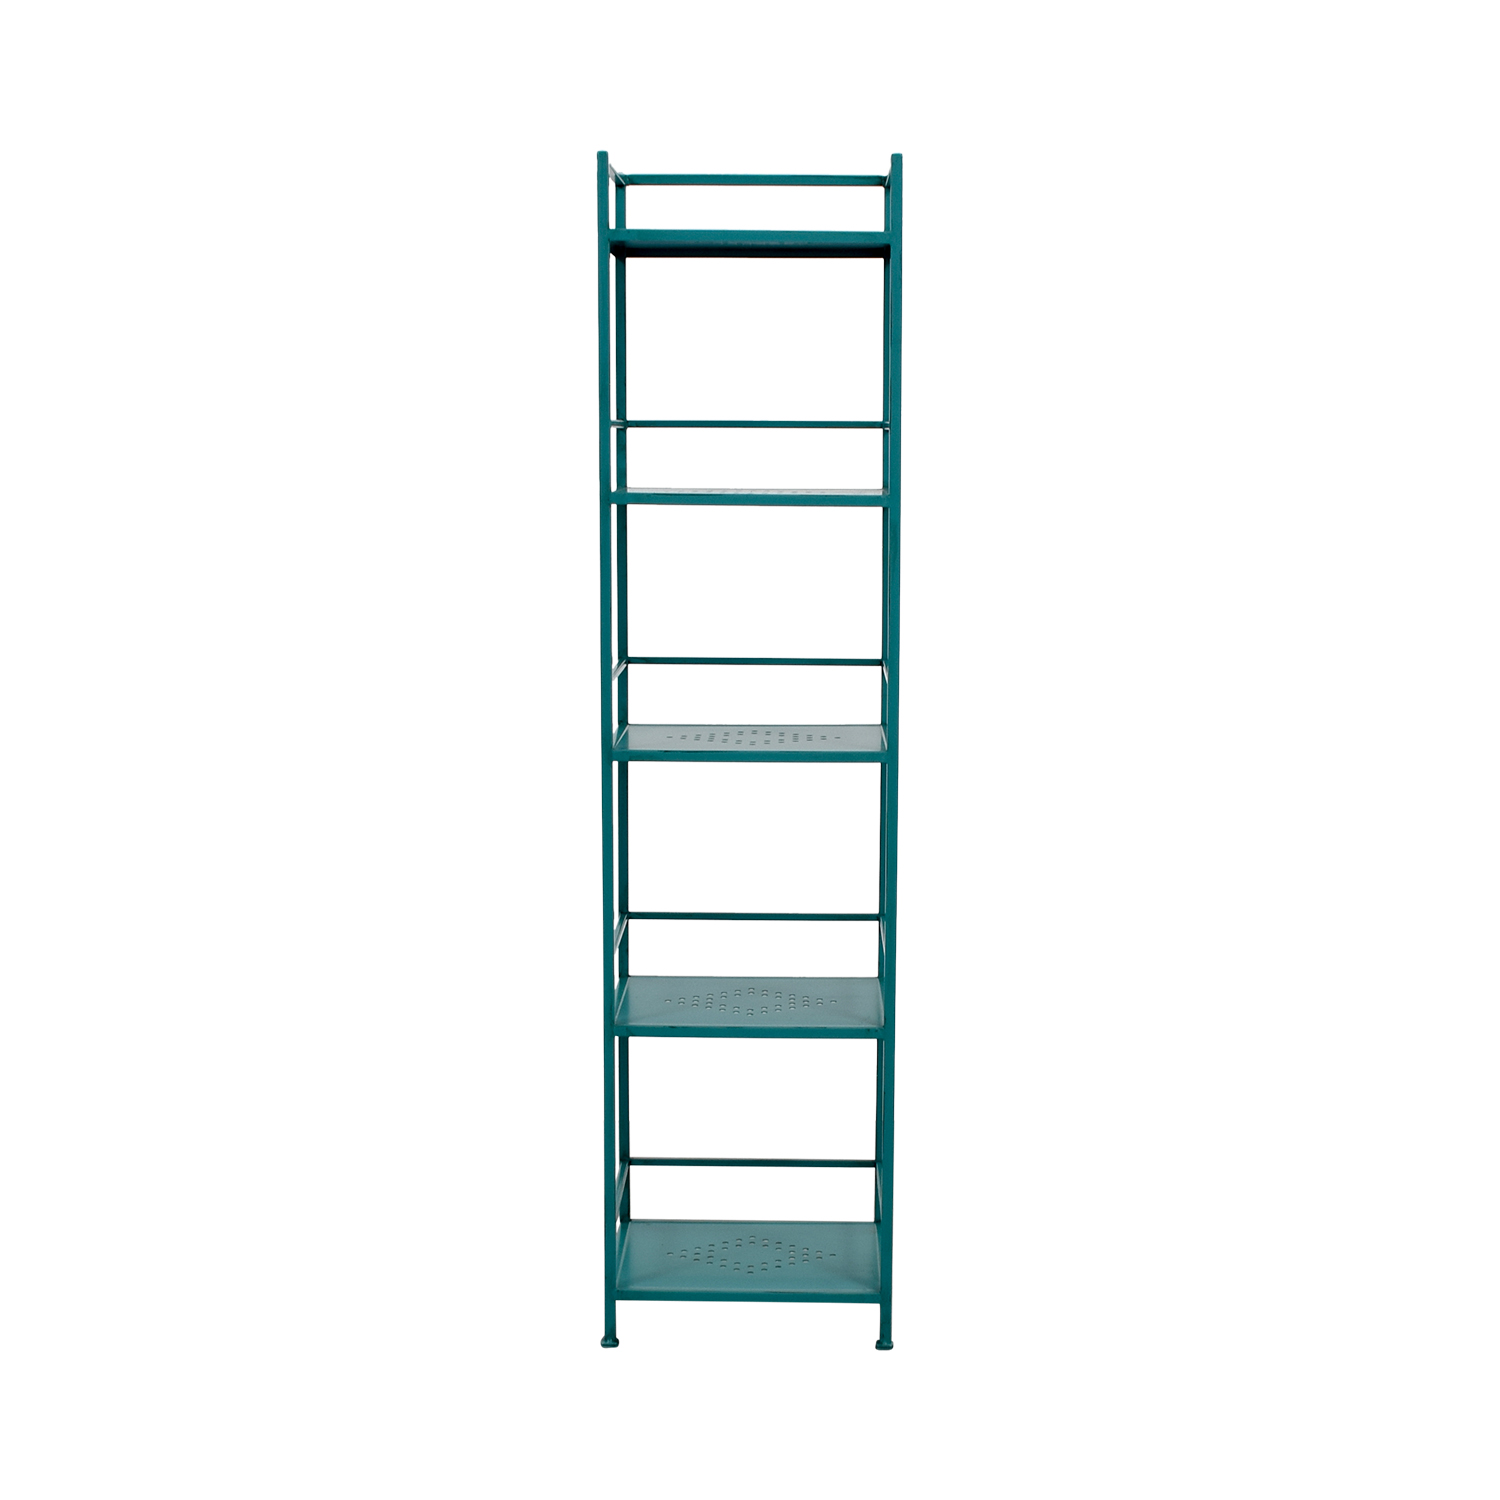 Pier 1 Imports Weldon Turquoise Metal High Shelf Pier 1 Imports